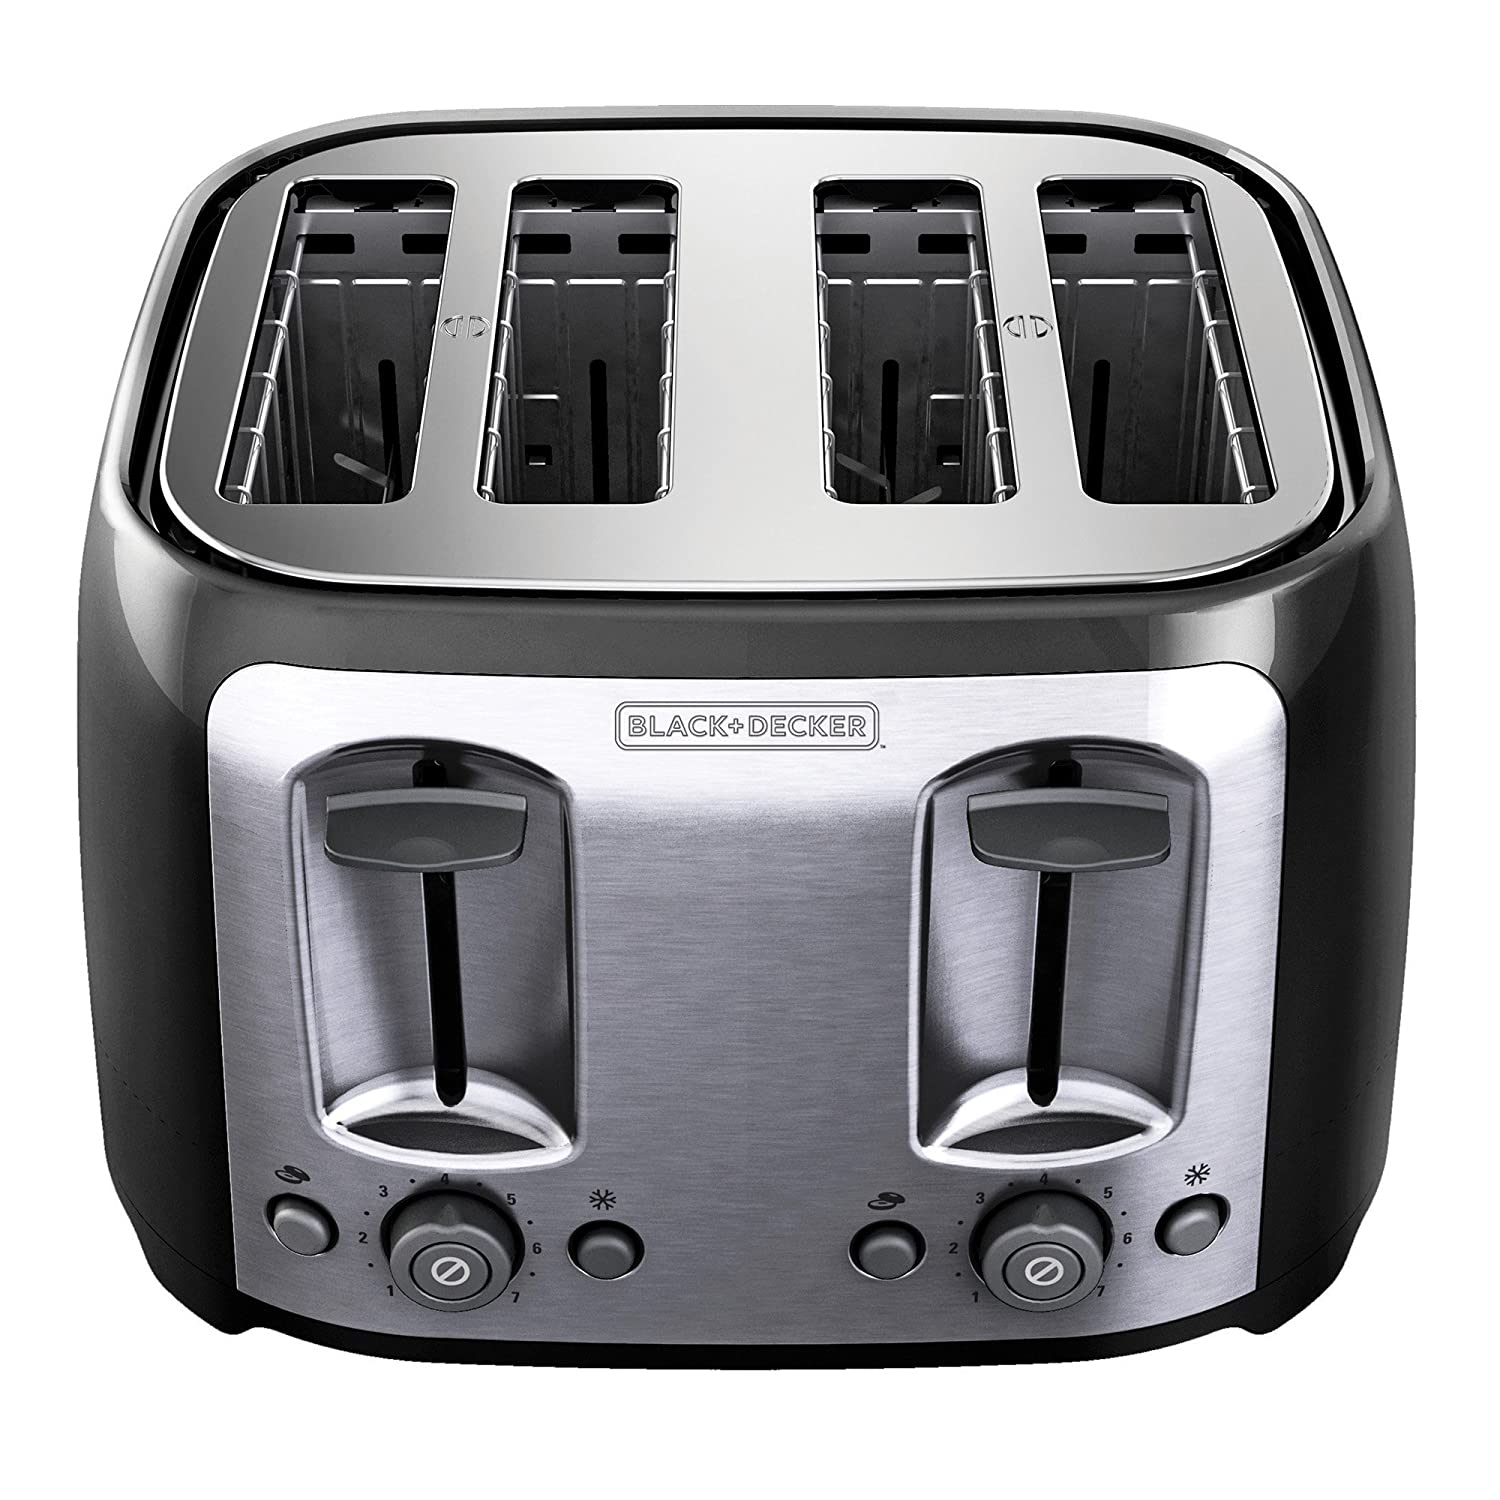 Quilted Kitchen Appliance Covers Amazoncom Black Decker Tr1478bd 4 Slice Toaster Bagel Toaster